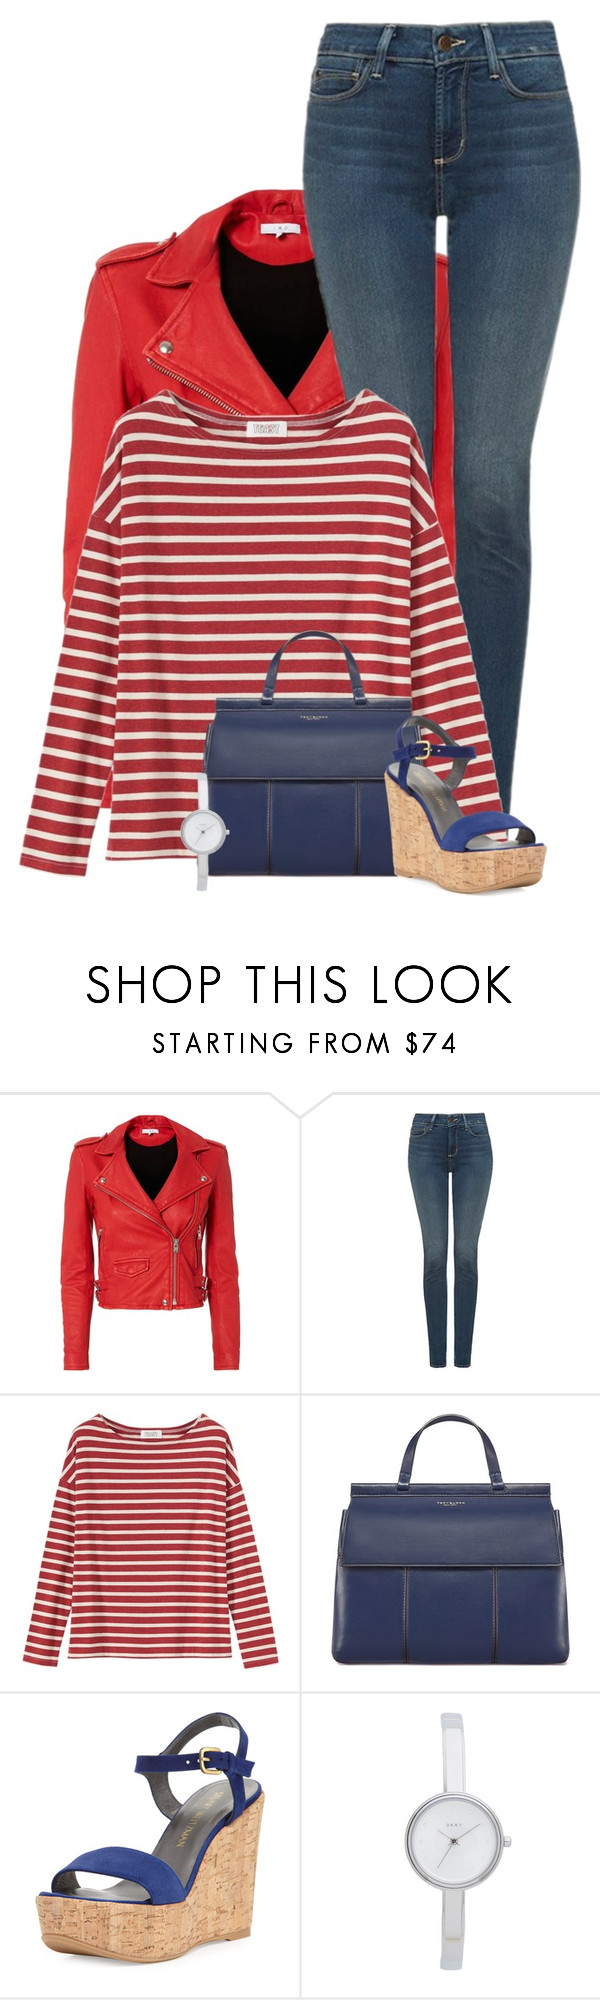 """13"" by divacrafts ❤ liked on Polyvore featuring IRO, NYDJ, Toast, Tory Burch, Stuart Weitzman, DKNY and Original"